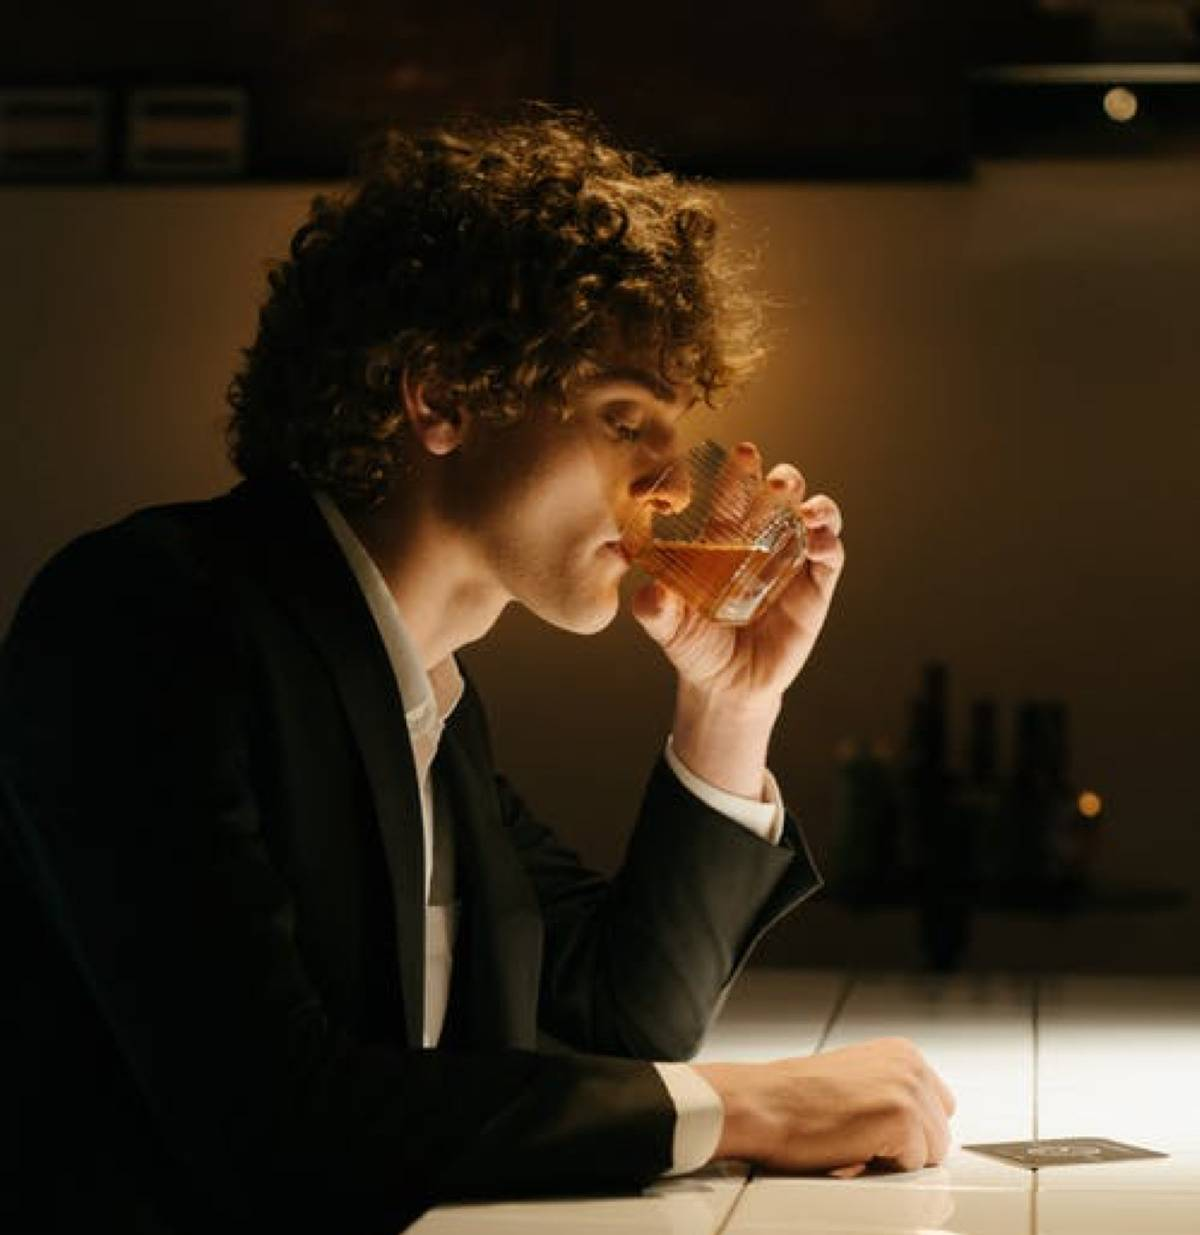 curly haired man drinking alone at bar